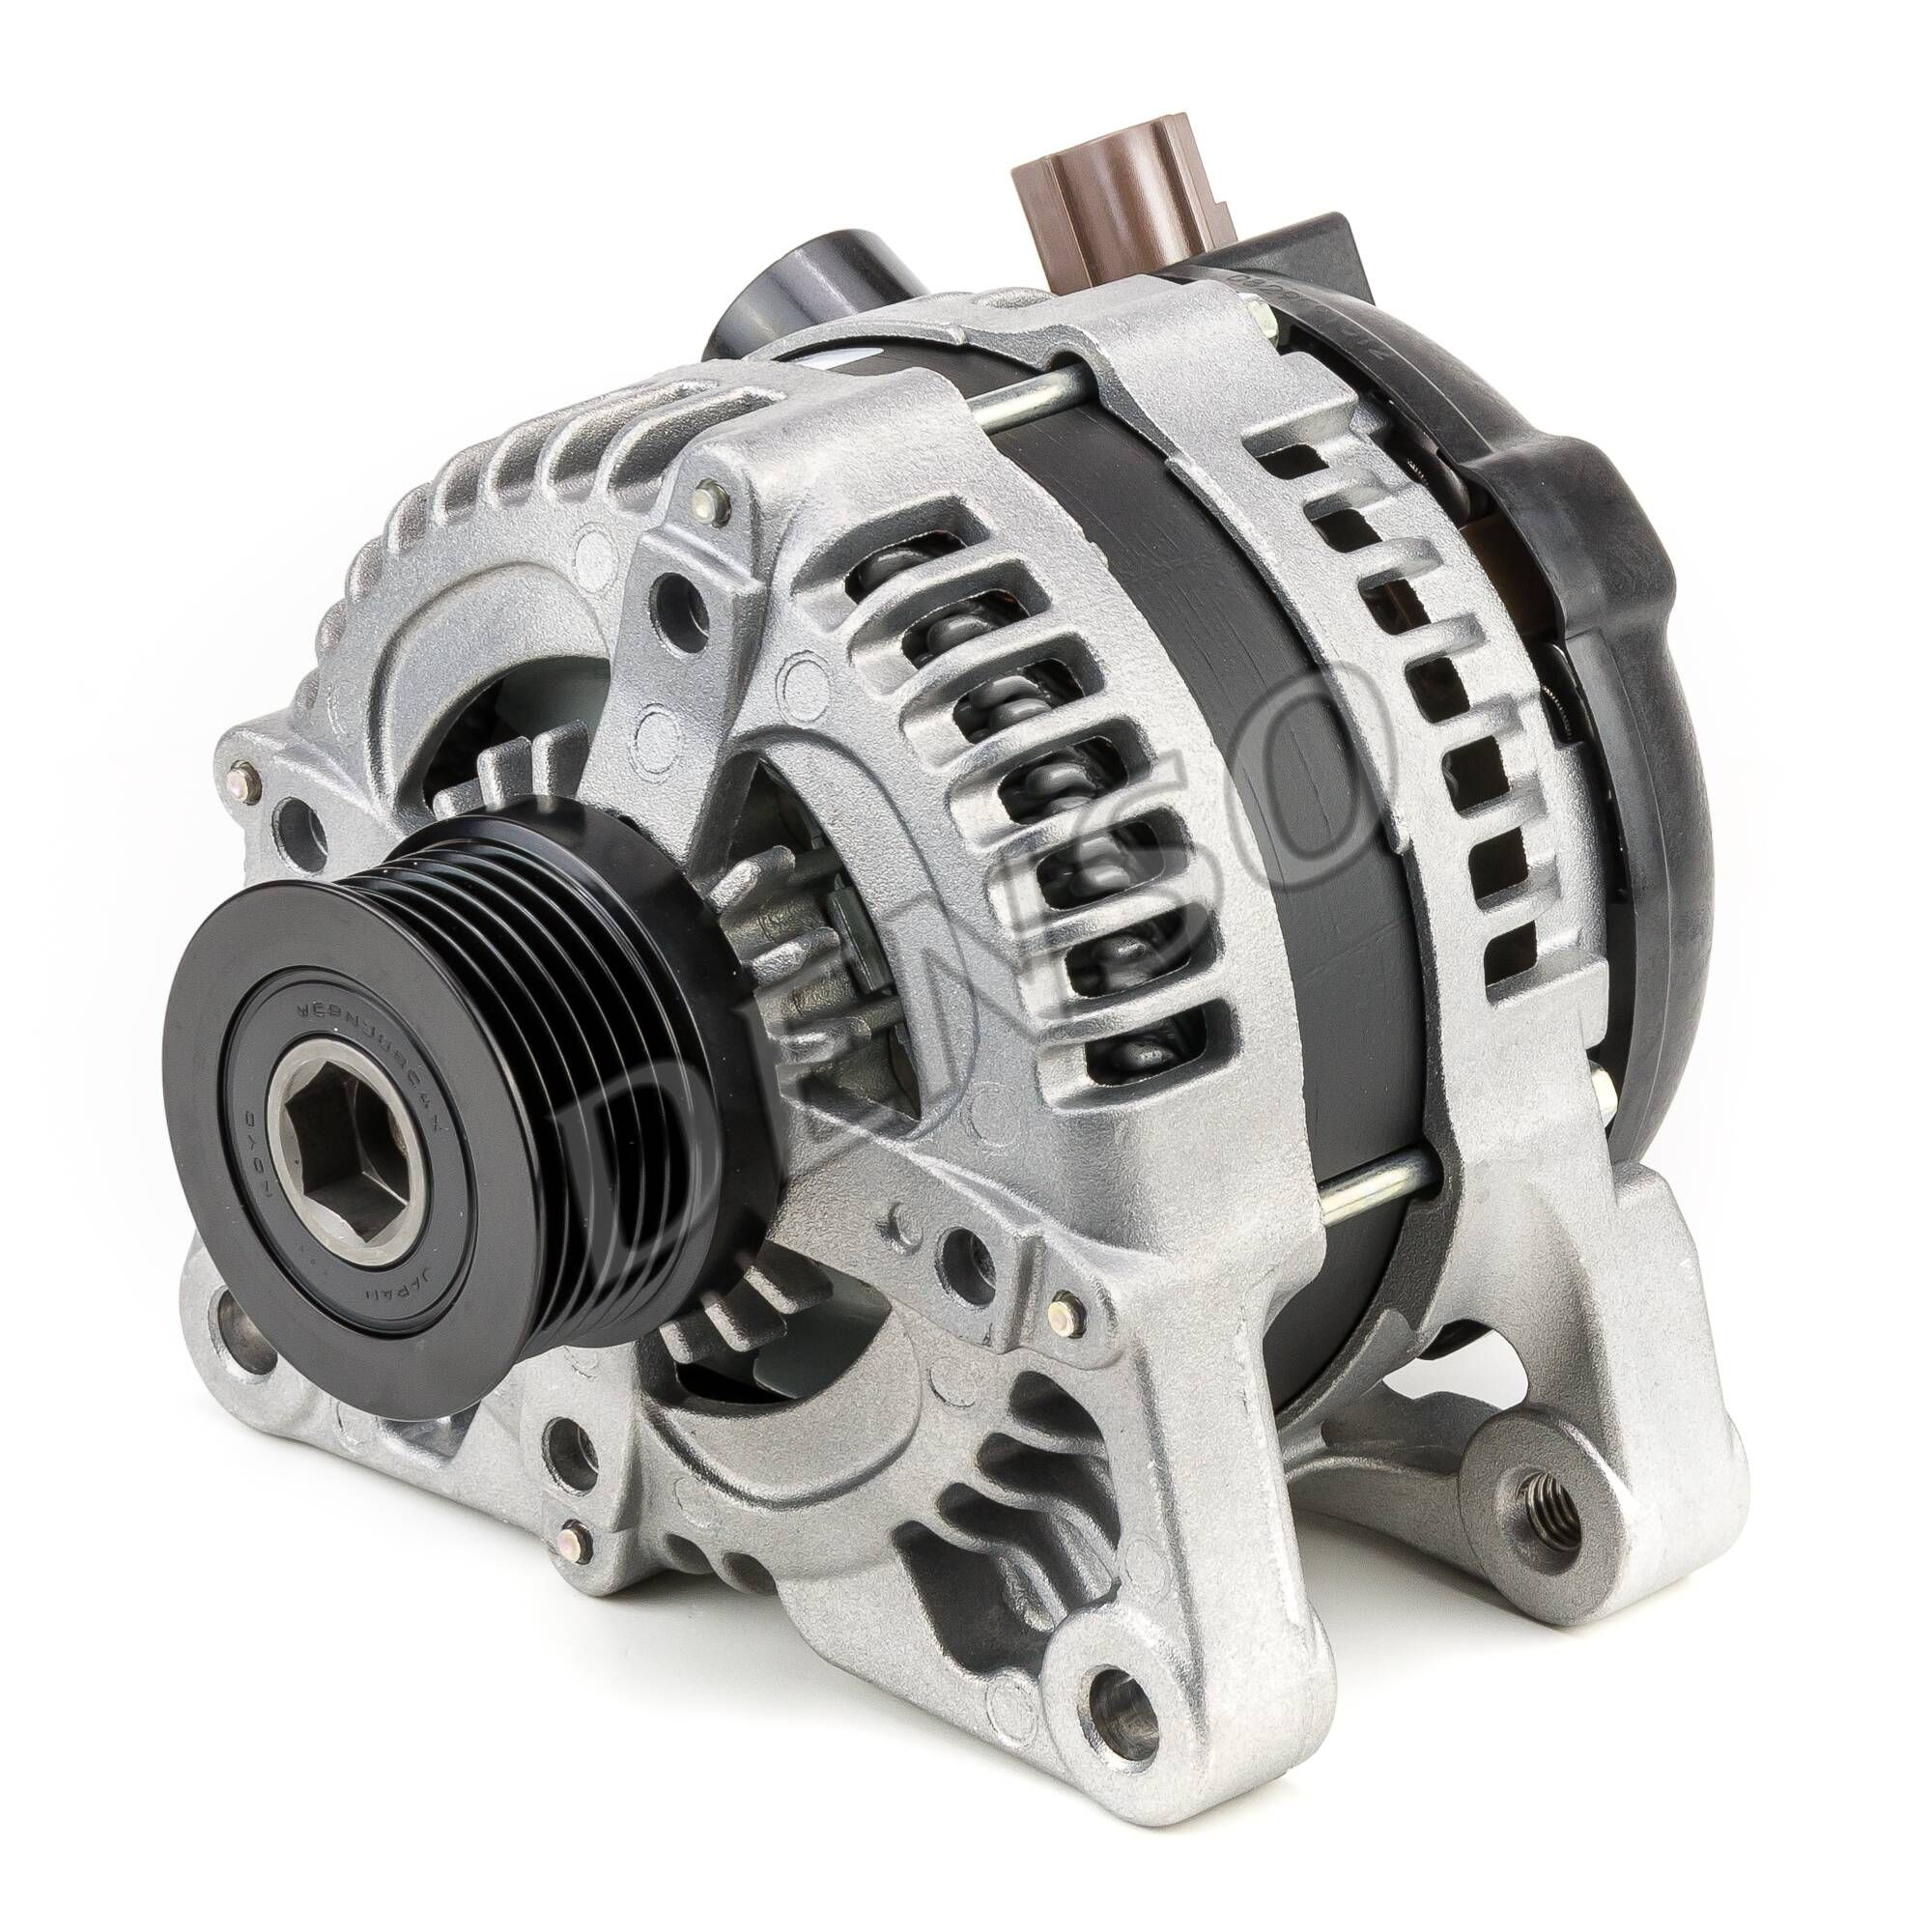 DENSO DAN930 Alternatore N° di nervature: 6